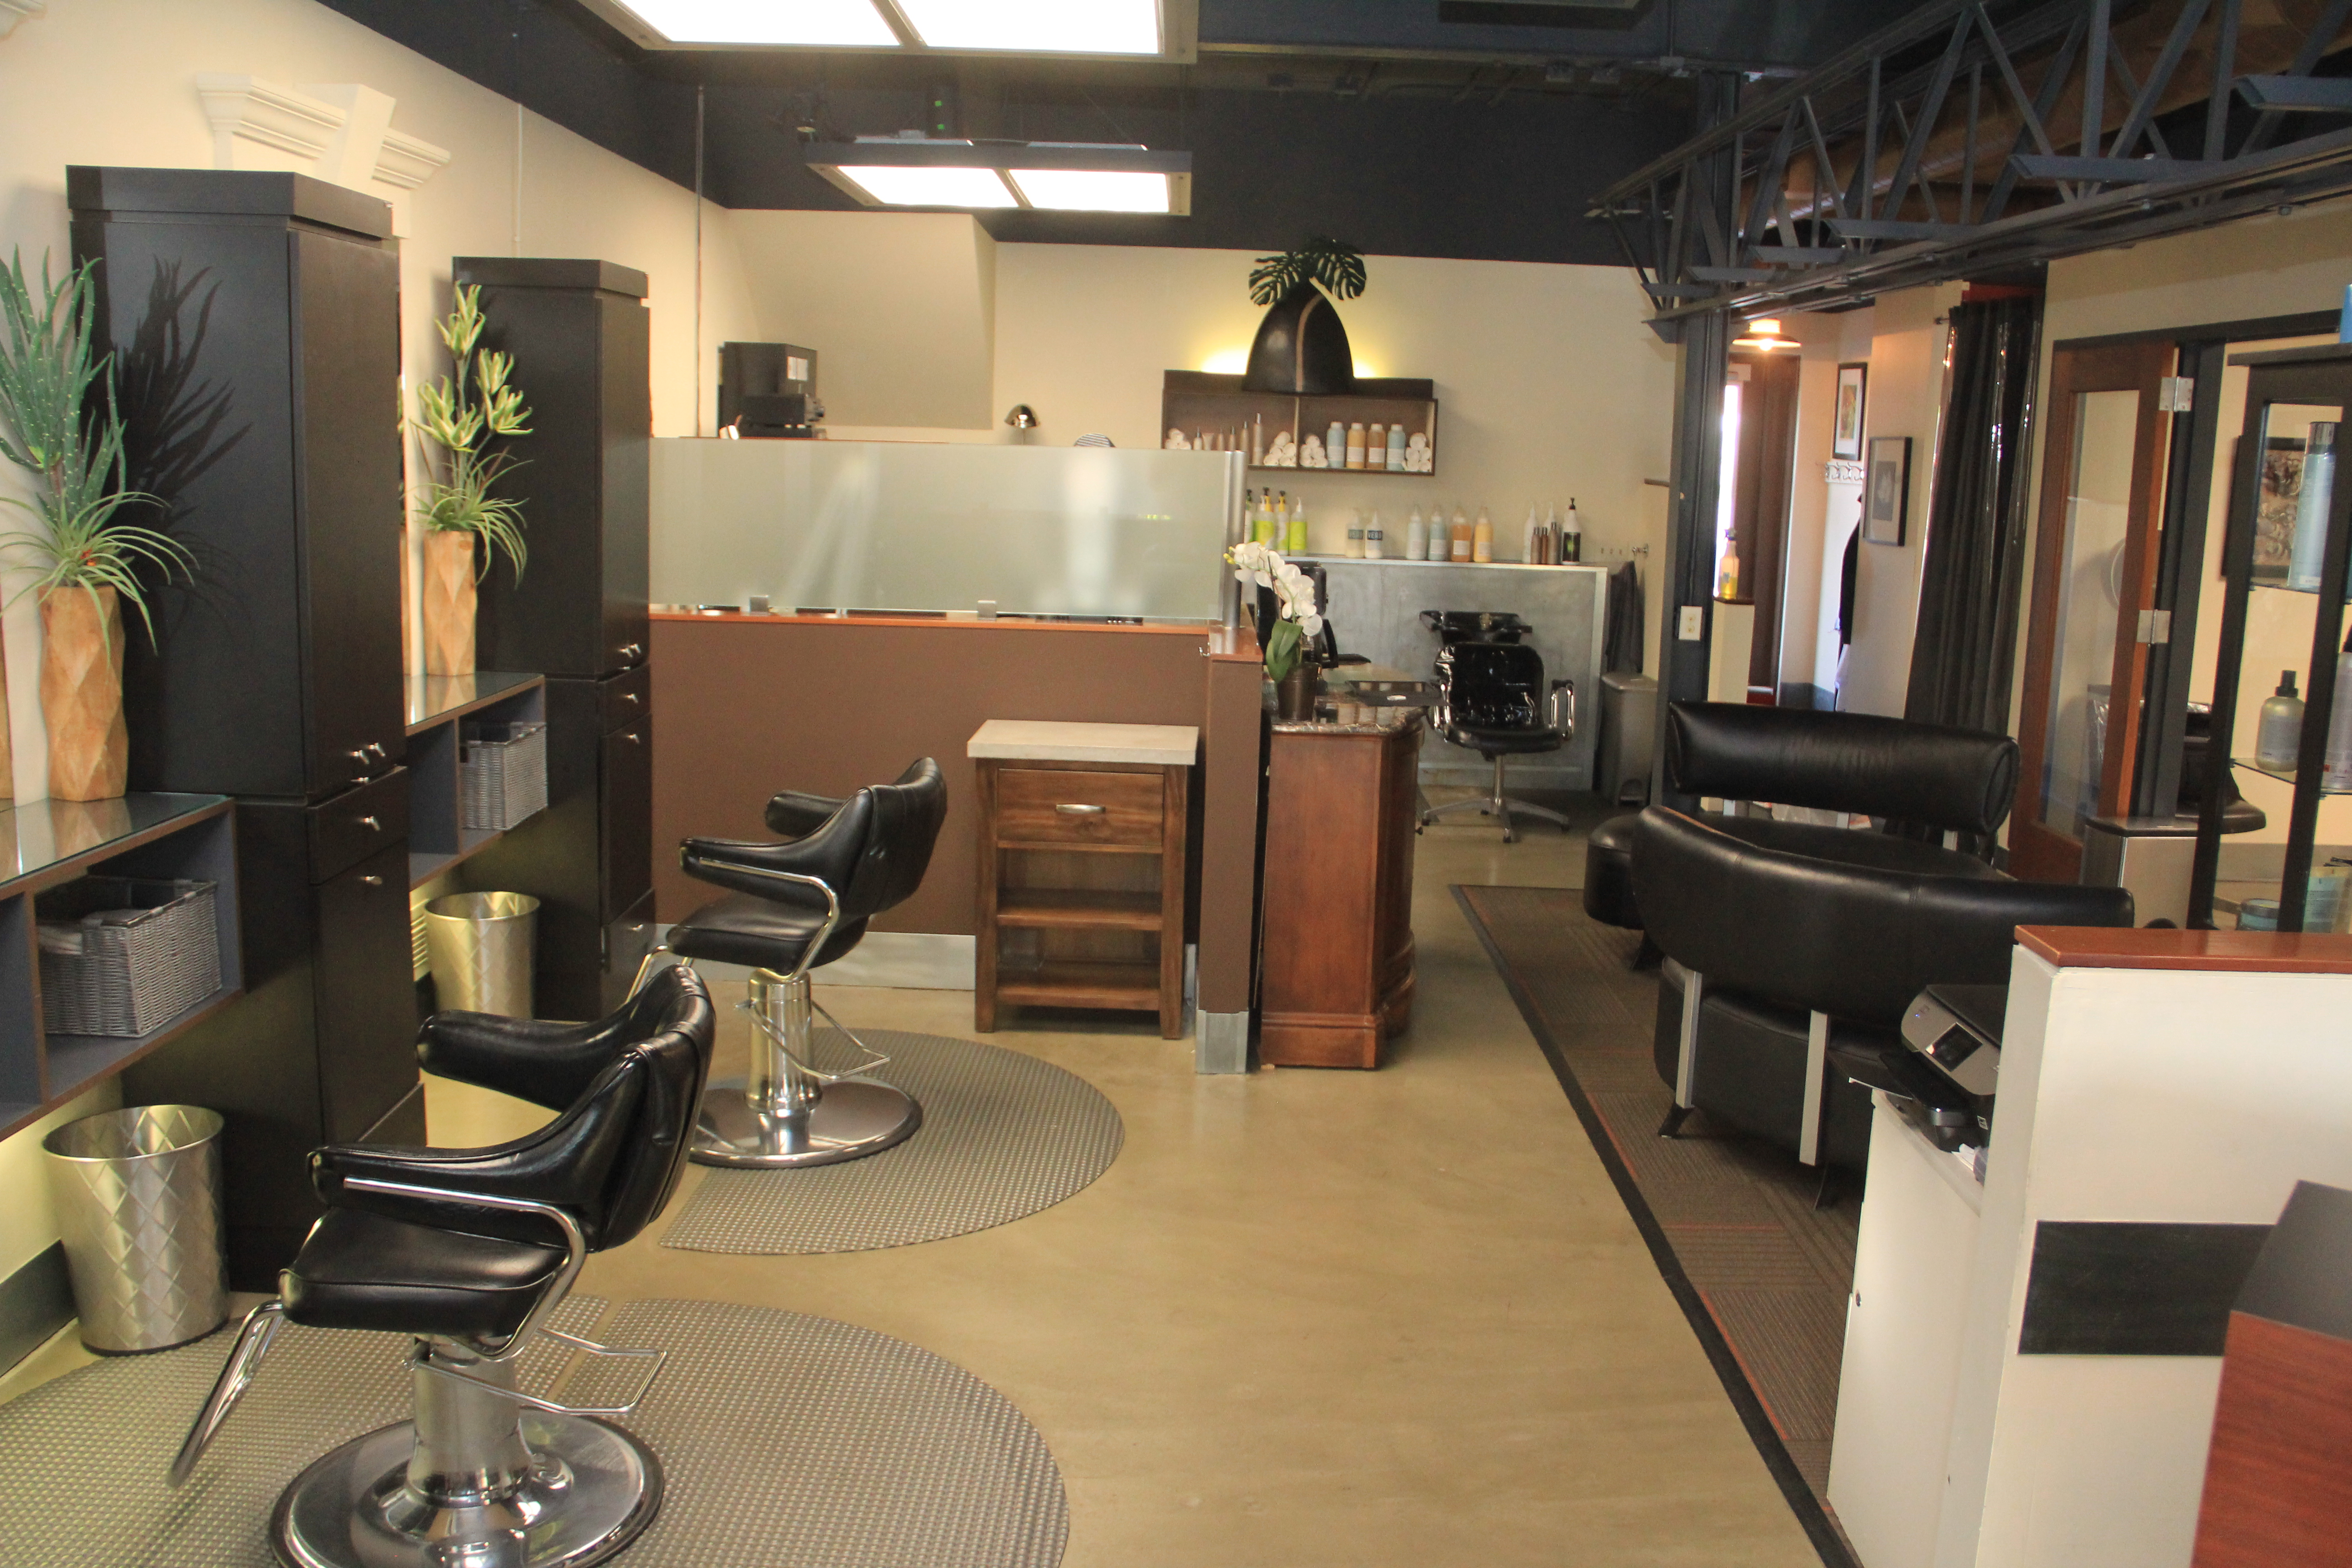 Hair Salon St Louis University Hair Coloring And Styling St Louis